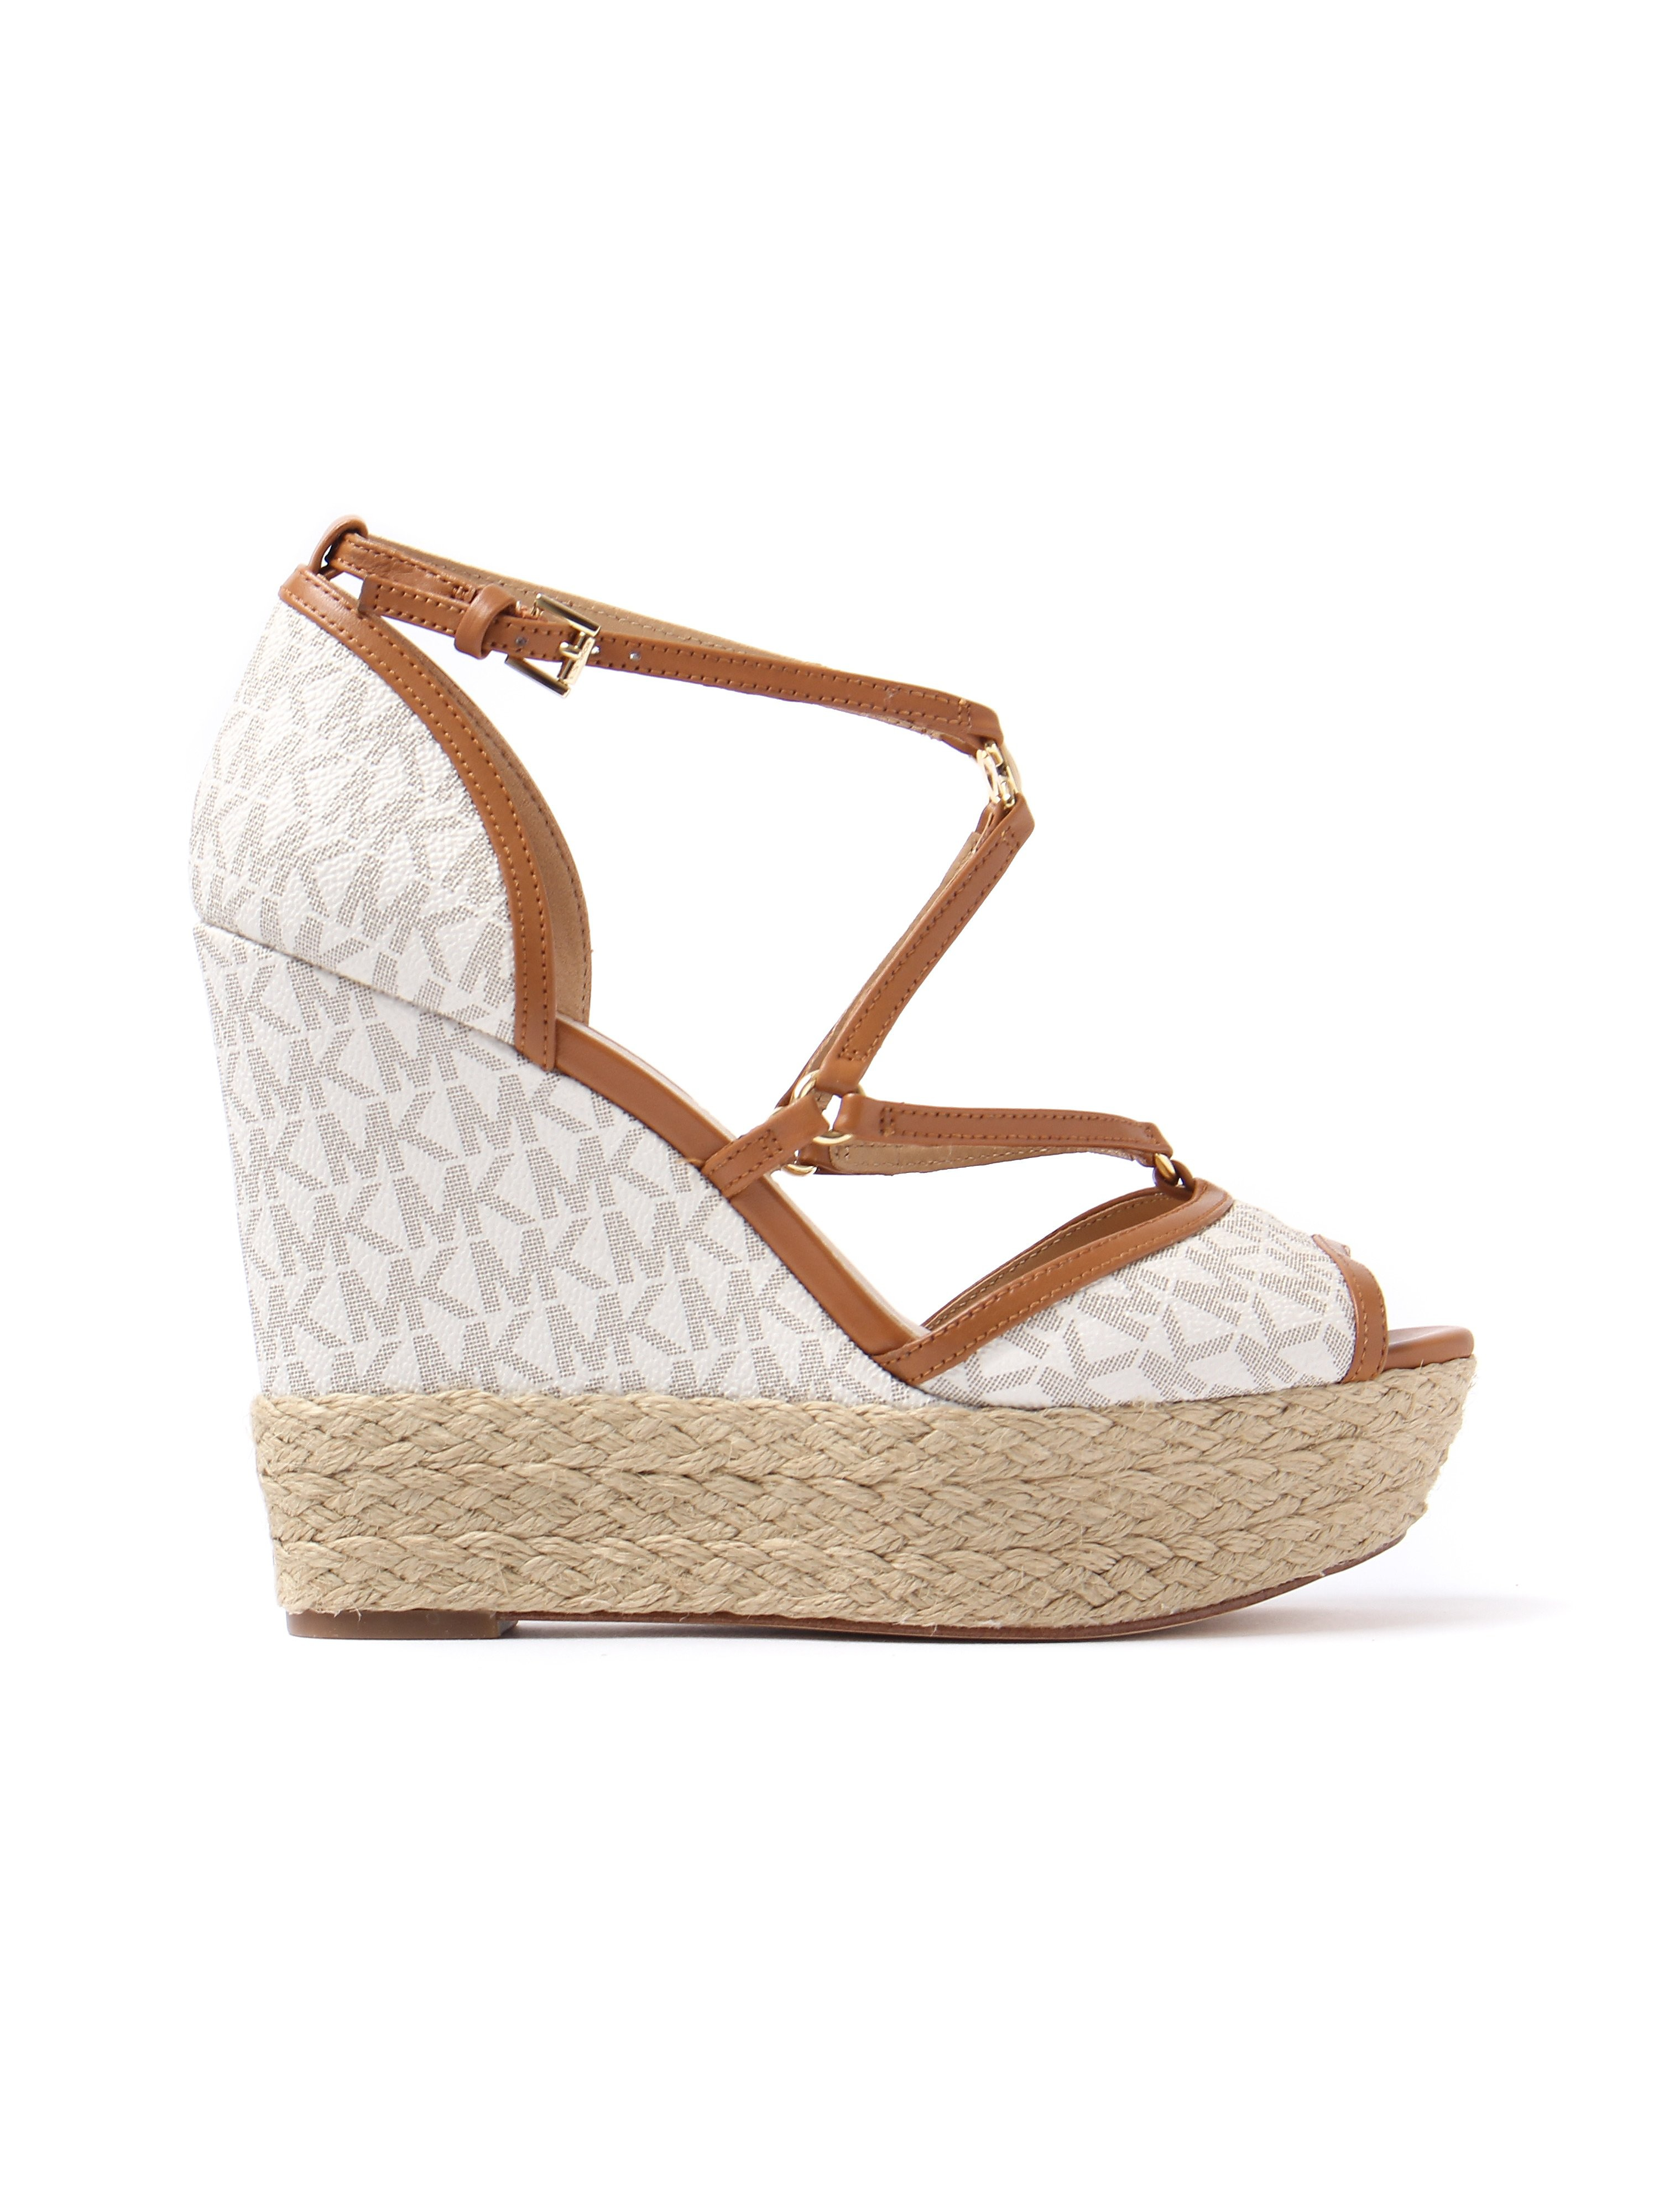 MICHAEL Michael Kors Women's Terri Leather & Woven Wedge Heels - Vanilla & Acorn